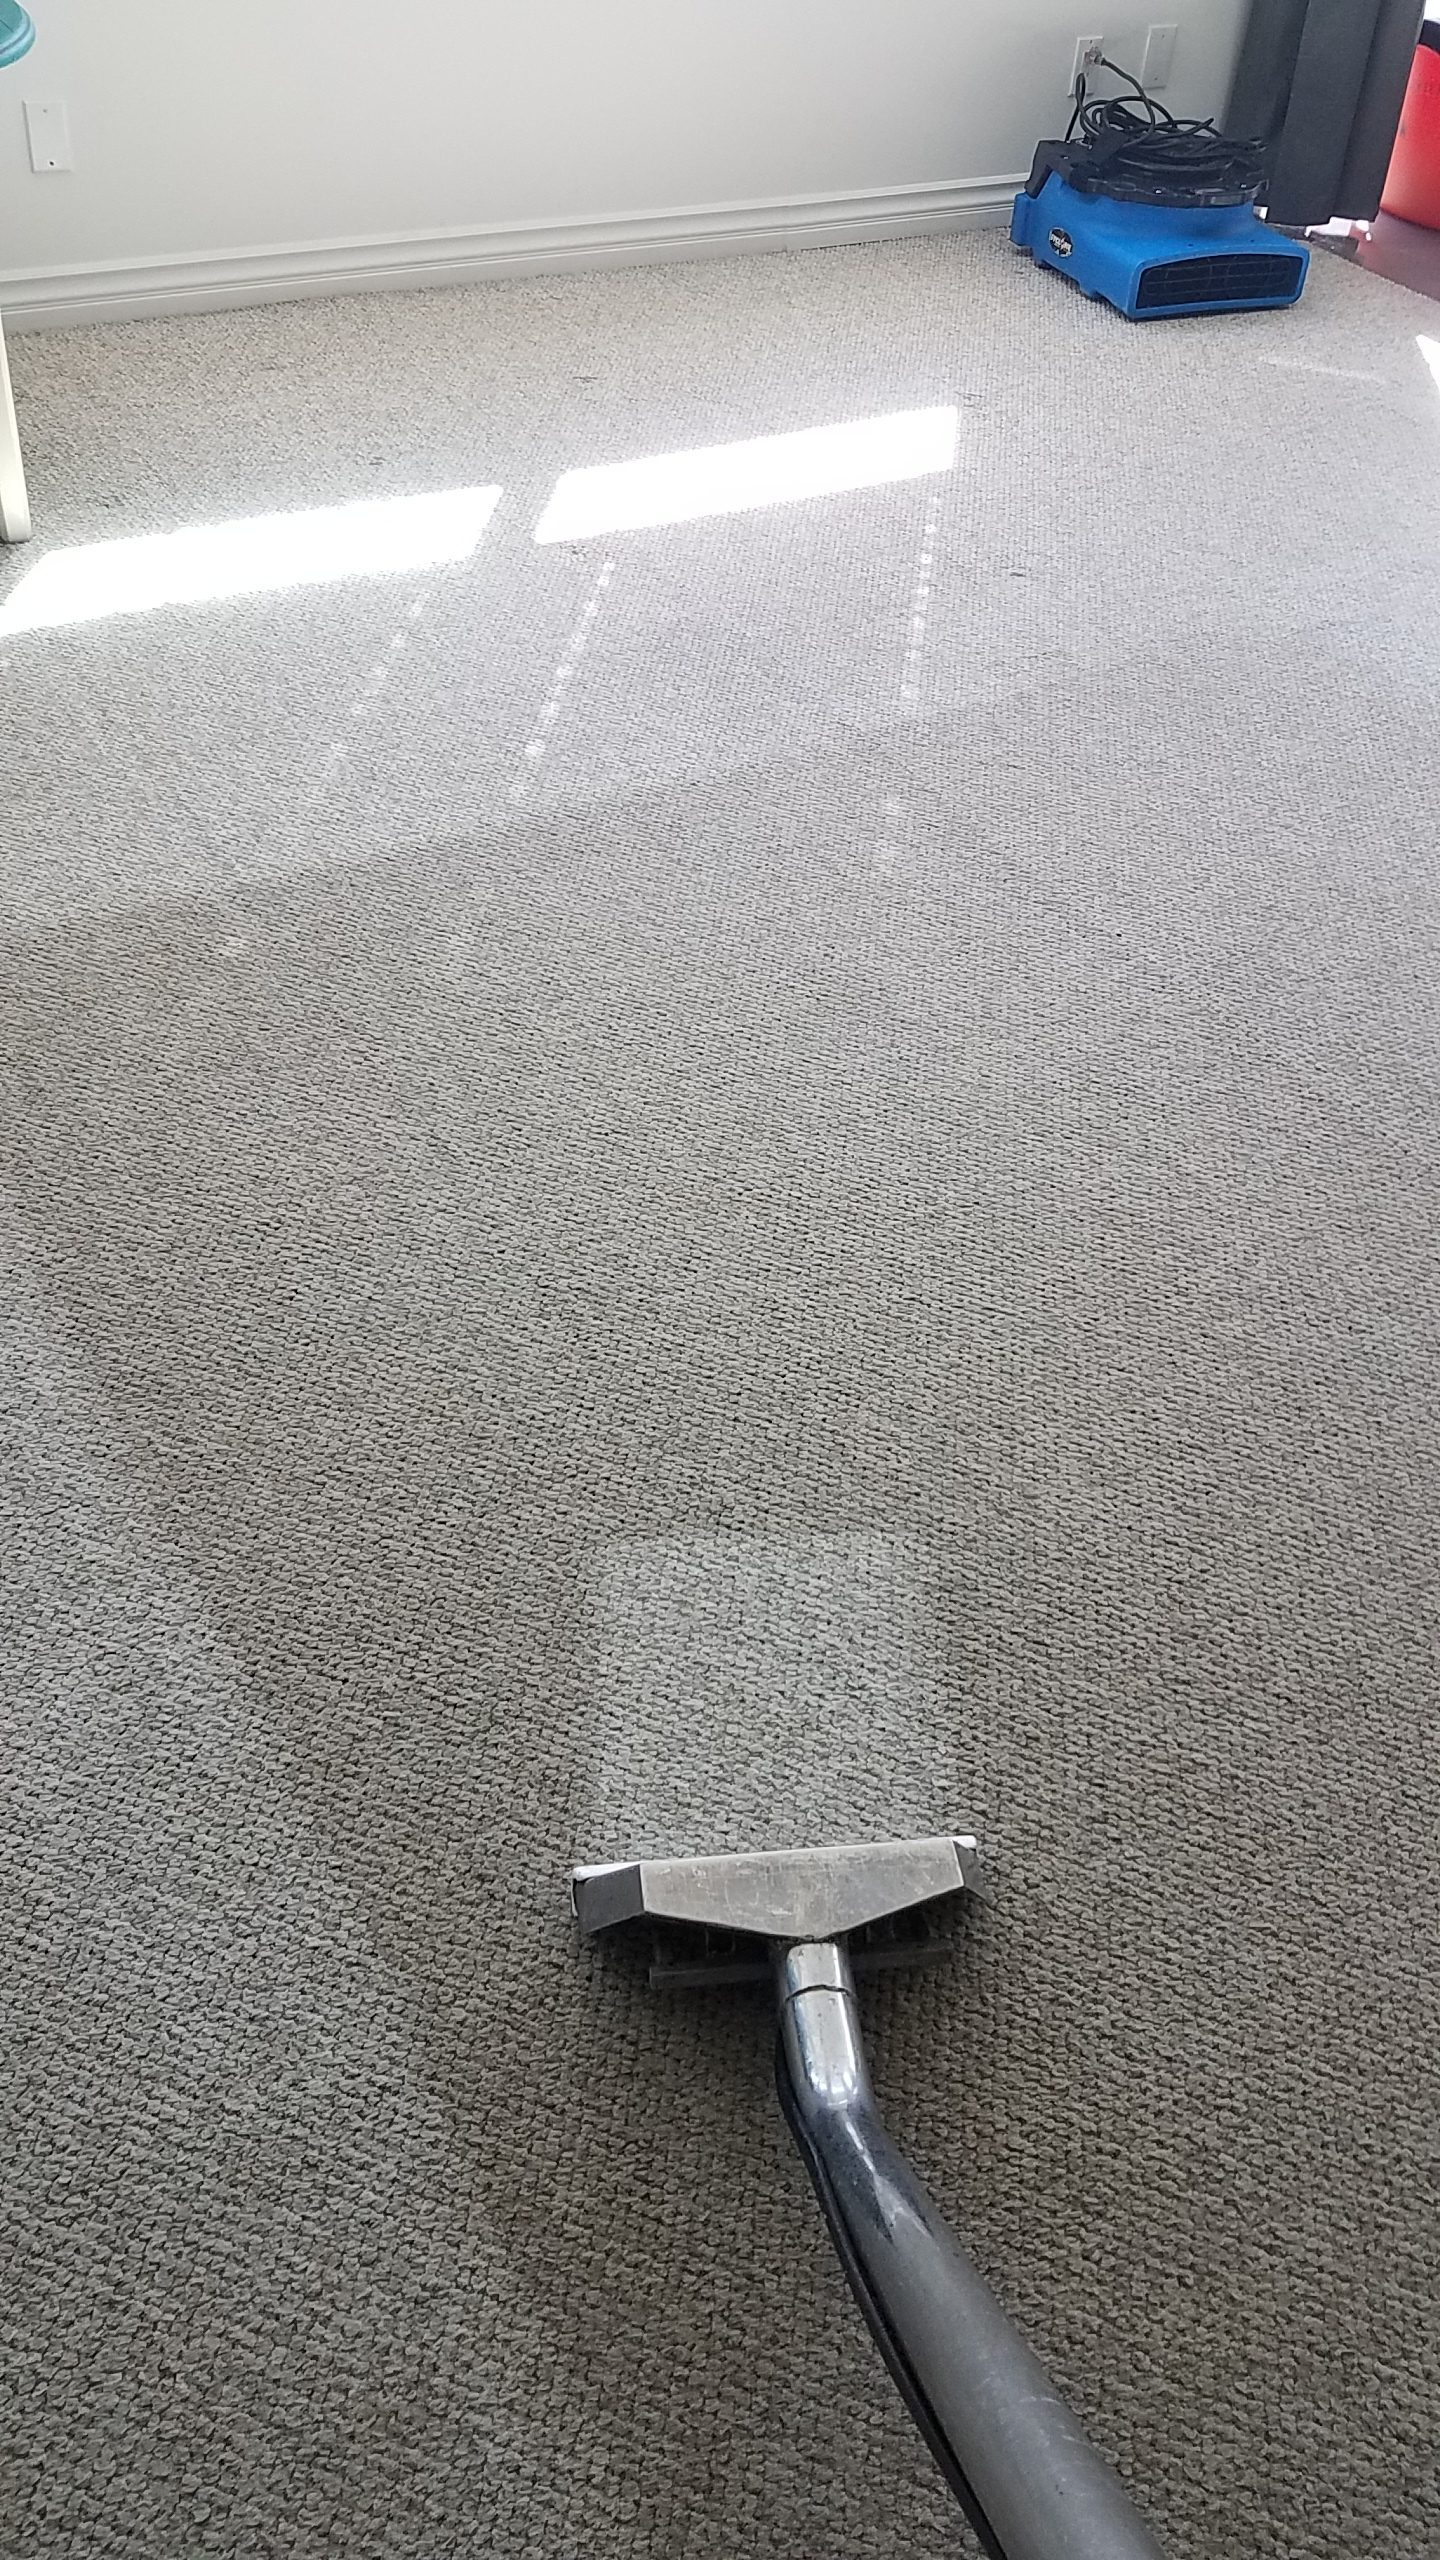 No residue left in carpet